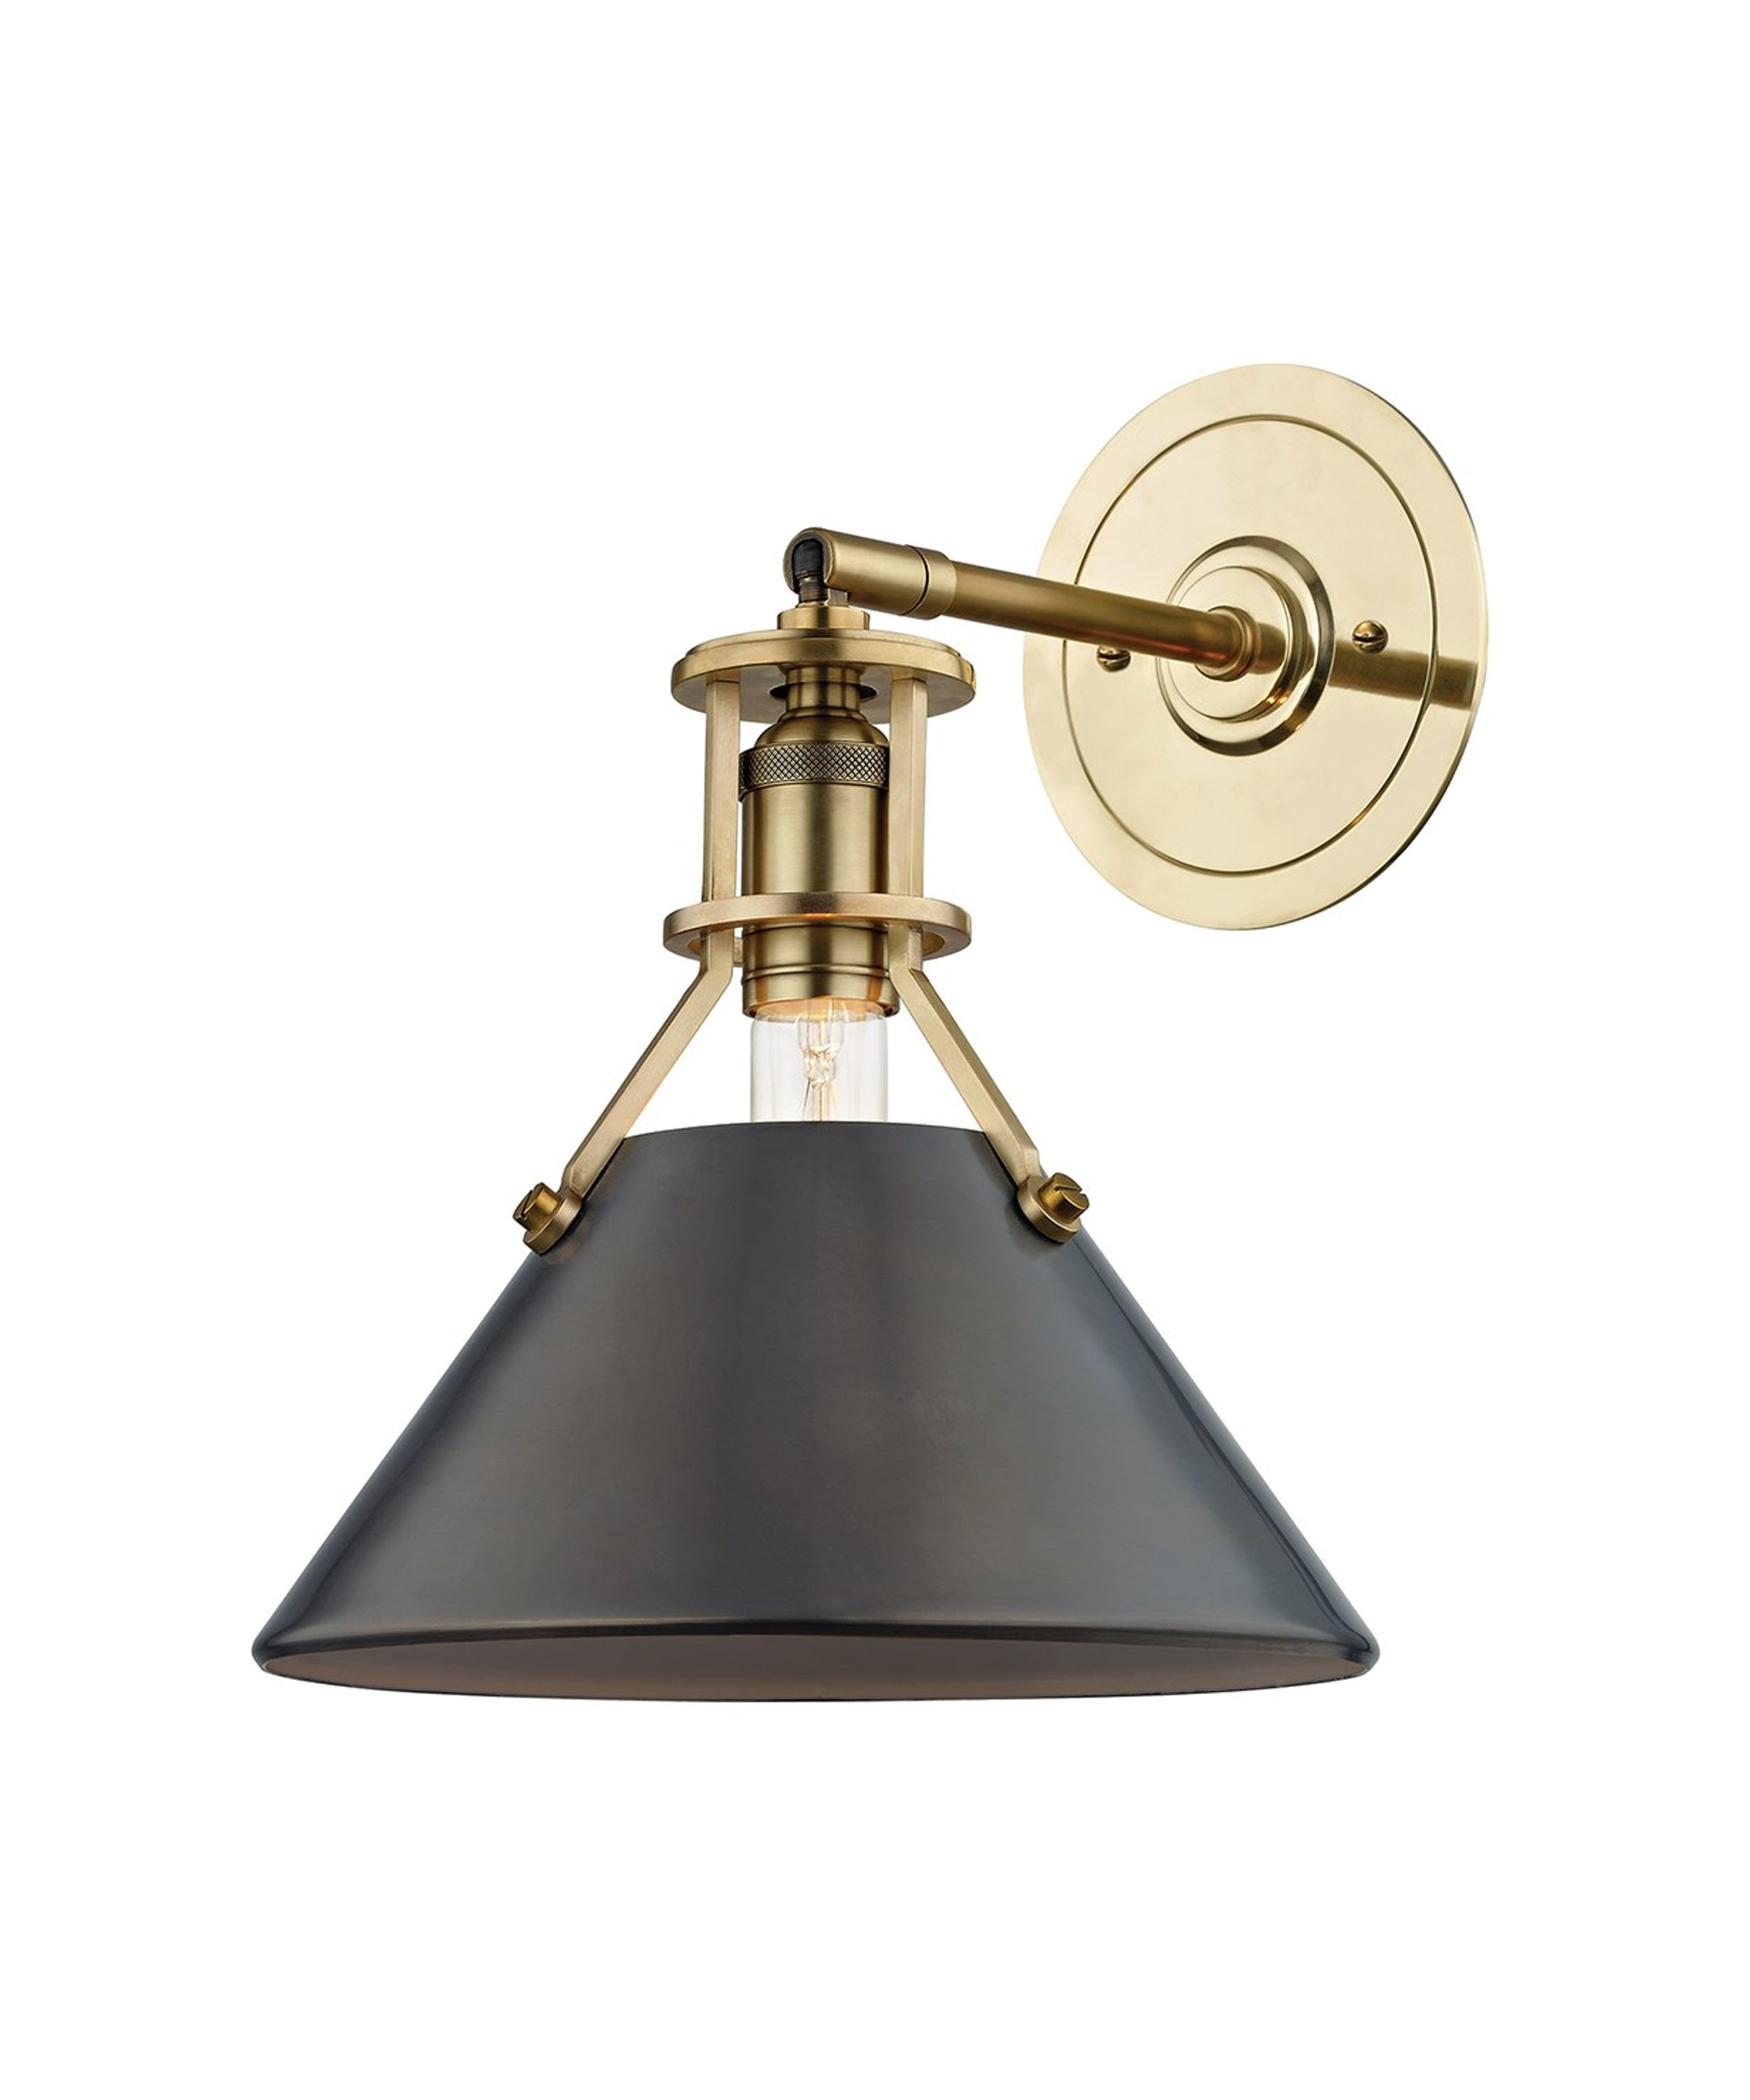 Metal No. 2 Wall Sconce, Aged Brass with Bronze Shade